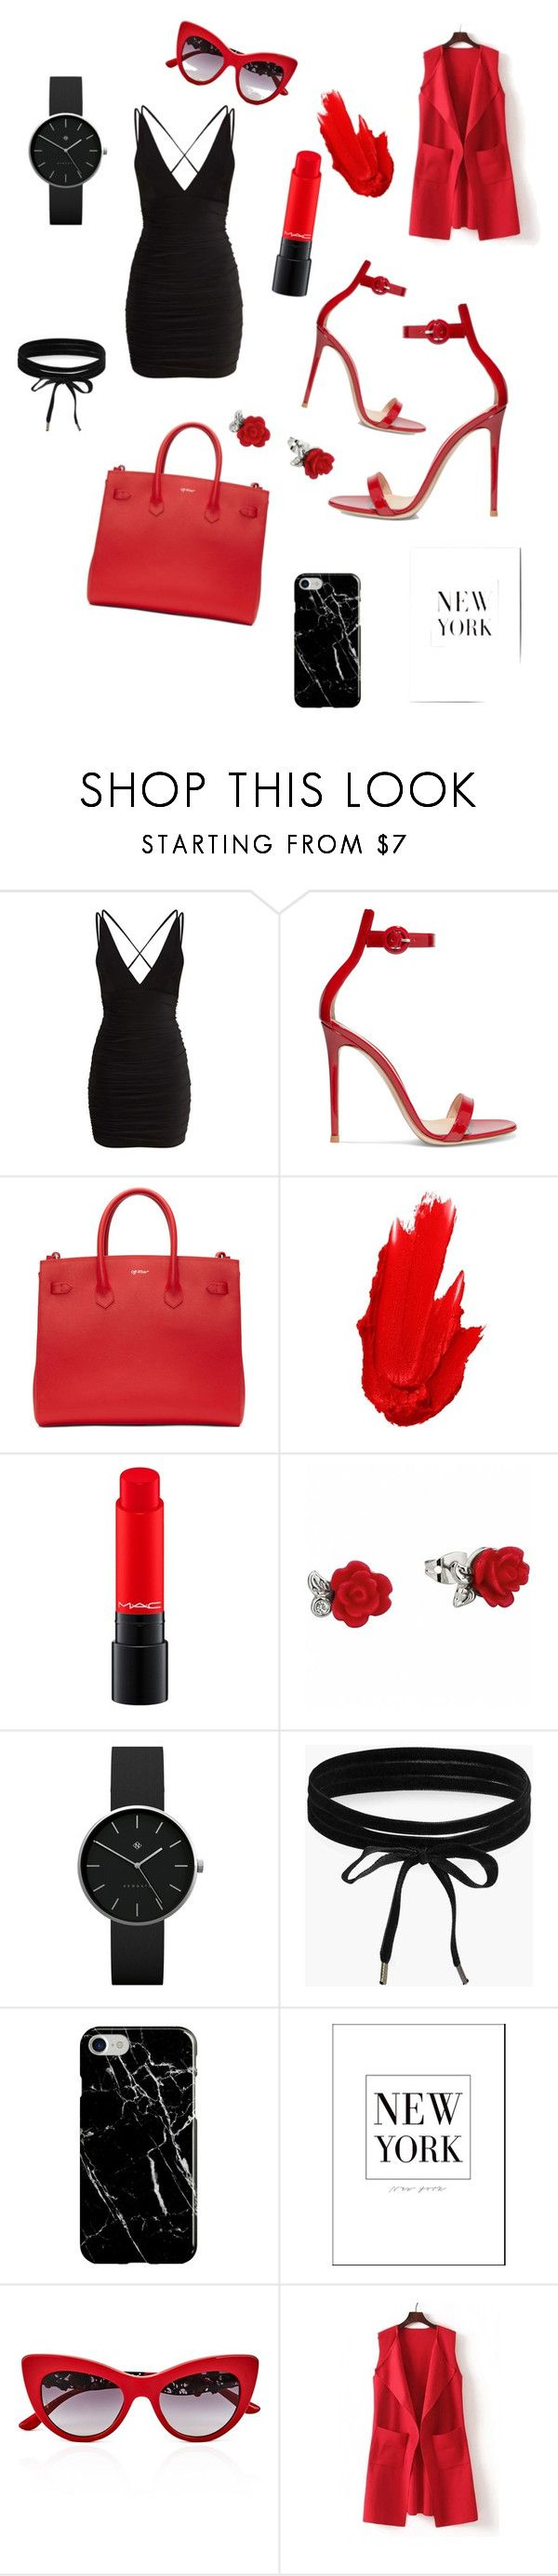 """Little black dress//contest🖤❤️"" by jodiemccrea ❤ liked on Polyvore featuring Gianvito Rossi, Off-White, Maybelline, Newgate, Boohoo, Recover, Dolce&Gabbana, WithChic, contest and fashionset"